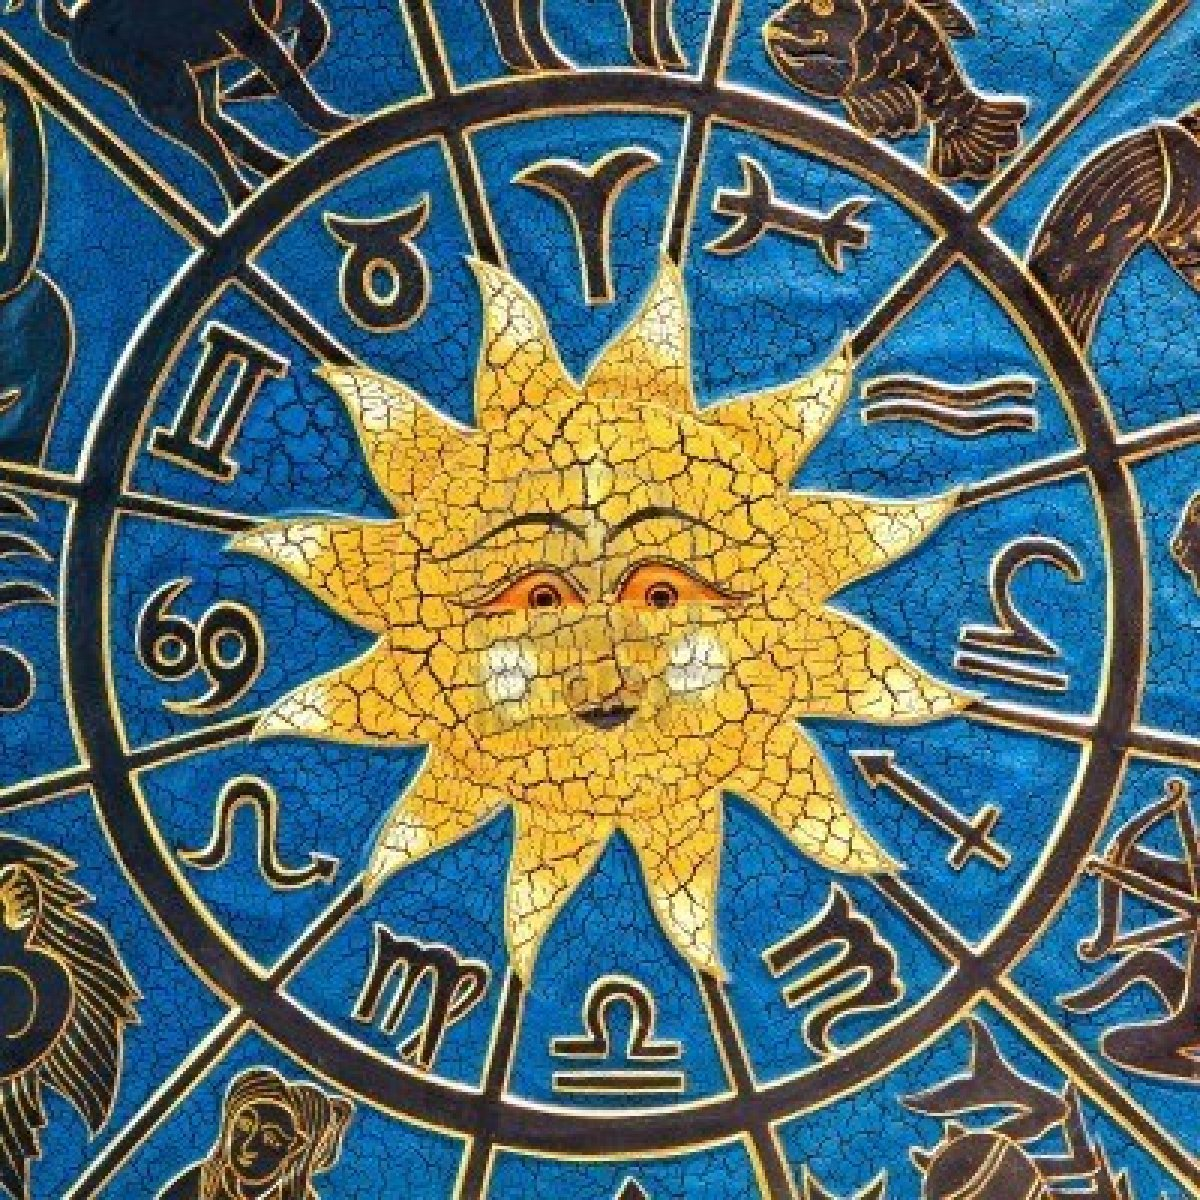 https://www.yoga-integral.fr/wp-content/uploads/2013/01/zodiac-signs-with-golden-sun.jpg